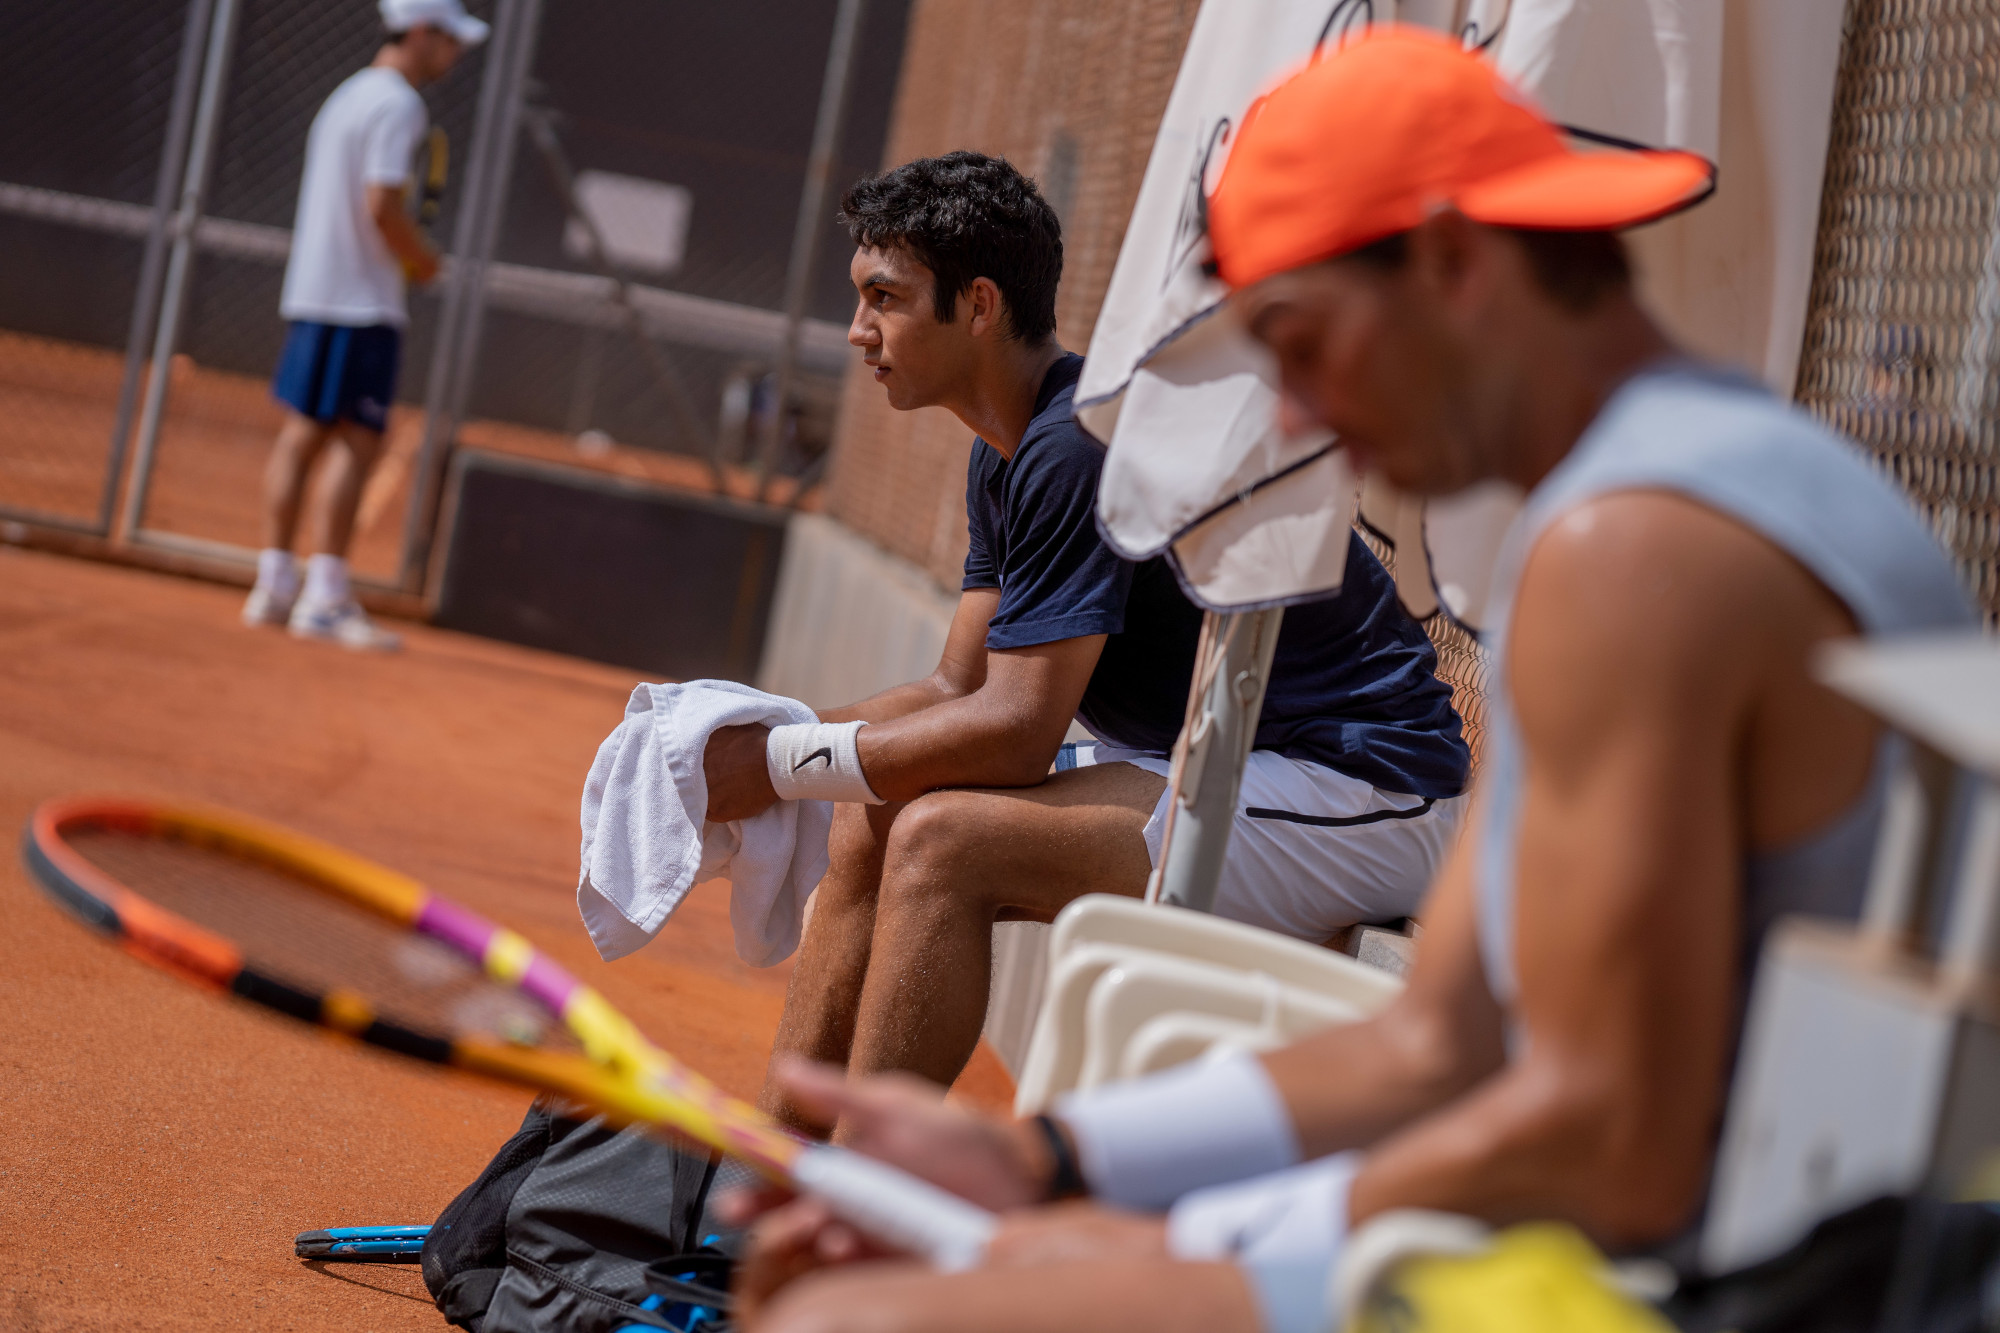 Rafa Nadal practices with Daniel Rincón in the Academy